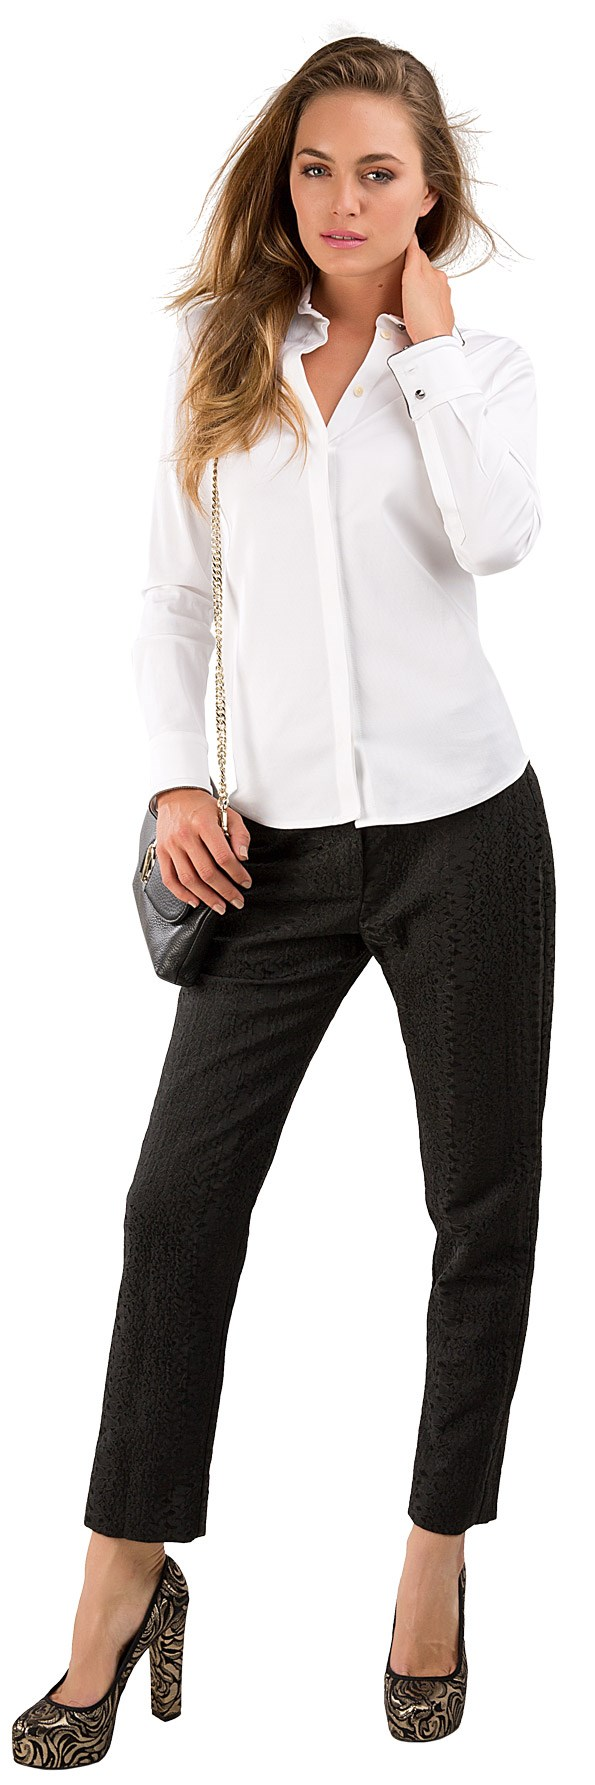 SMART Chains of Love shirt $249 from Trelise Cooper. Rock and Stroll pants from Trelise Cooper. Chain bag $190, Morse heel $230, both from Mi Piaci.